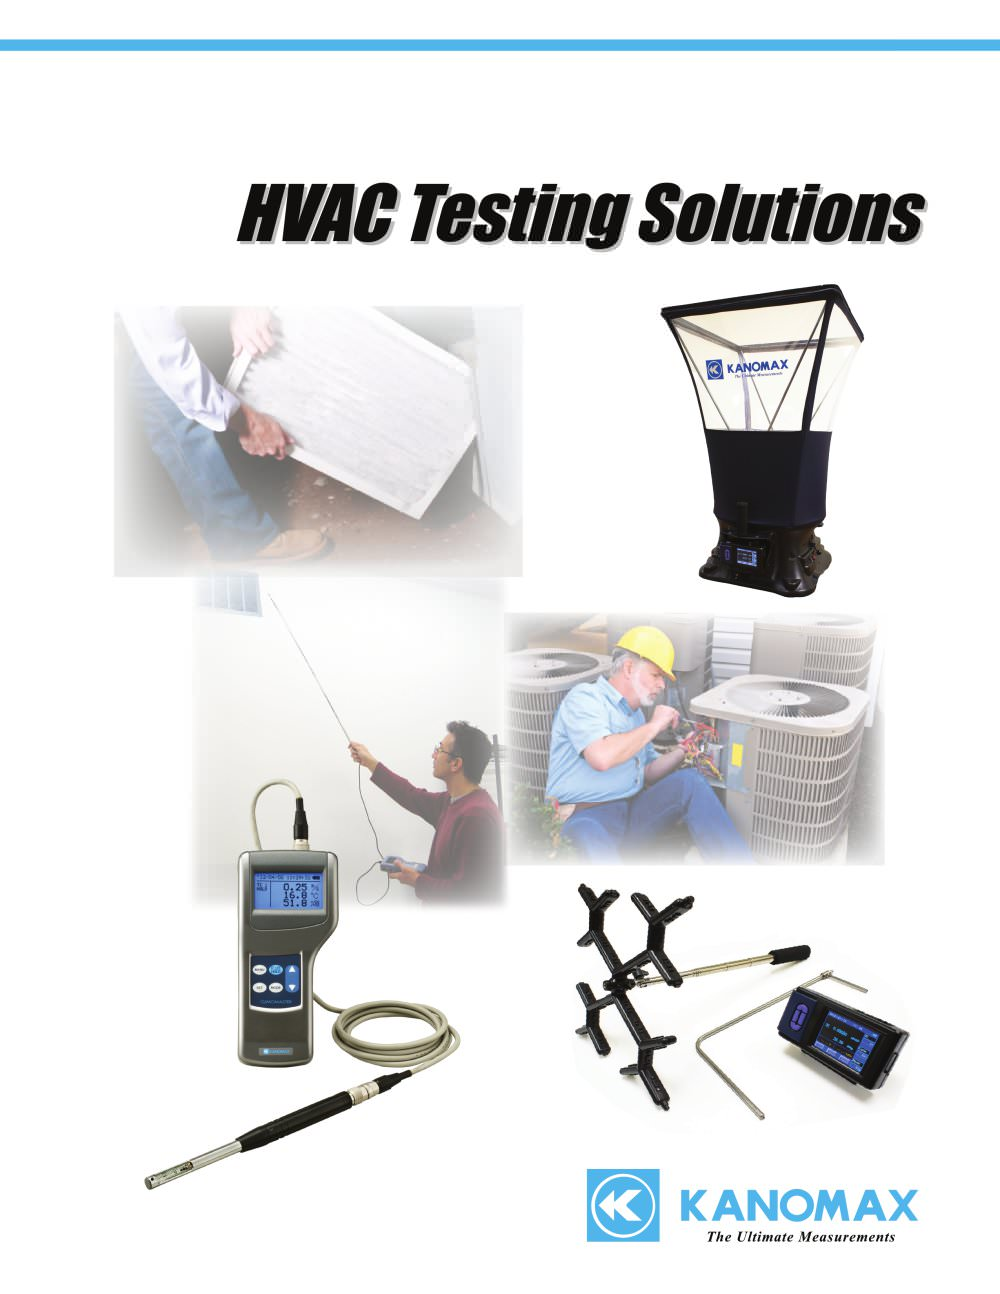 hight resolution of kanomax hvac testing solutions 2014 1 8 pages